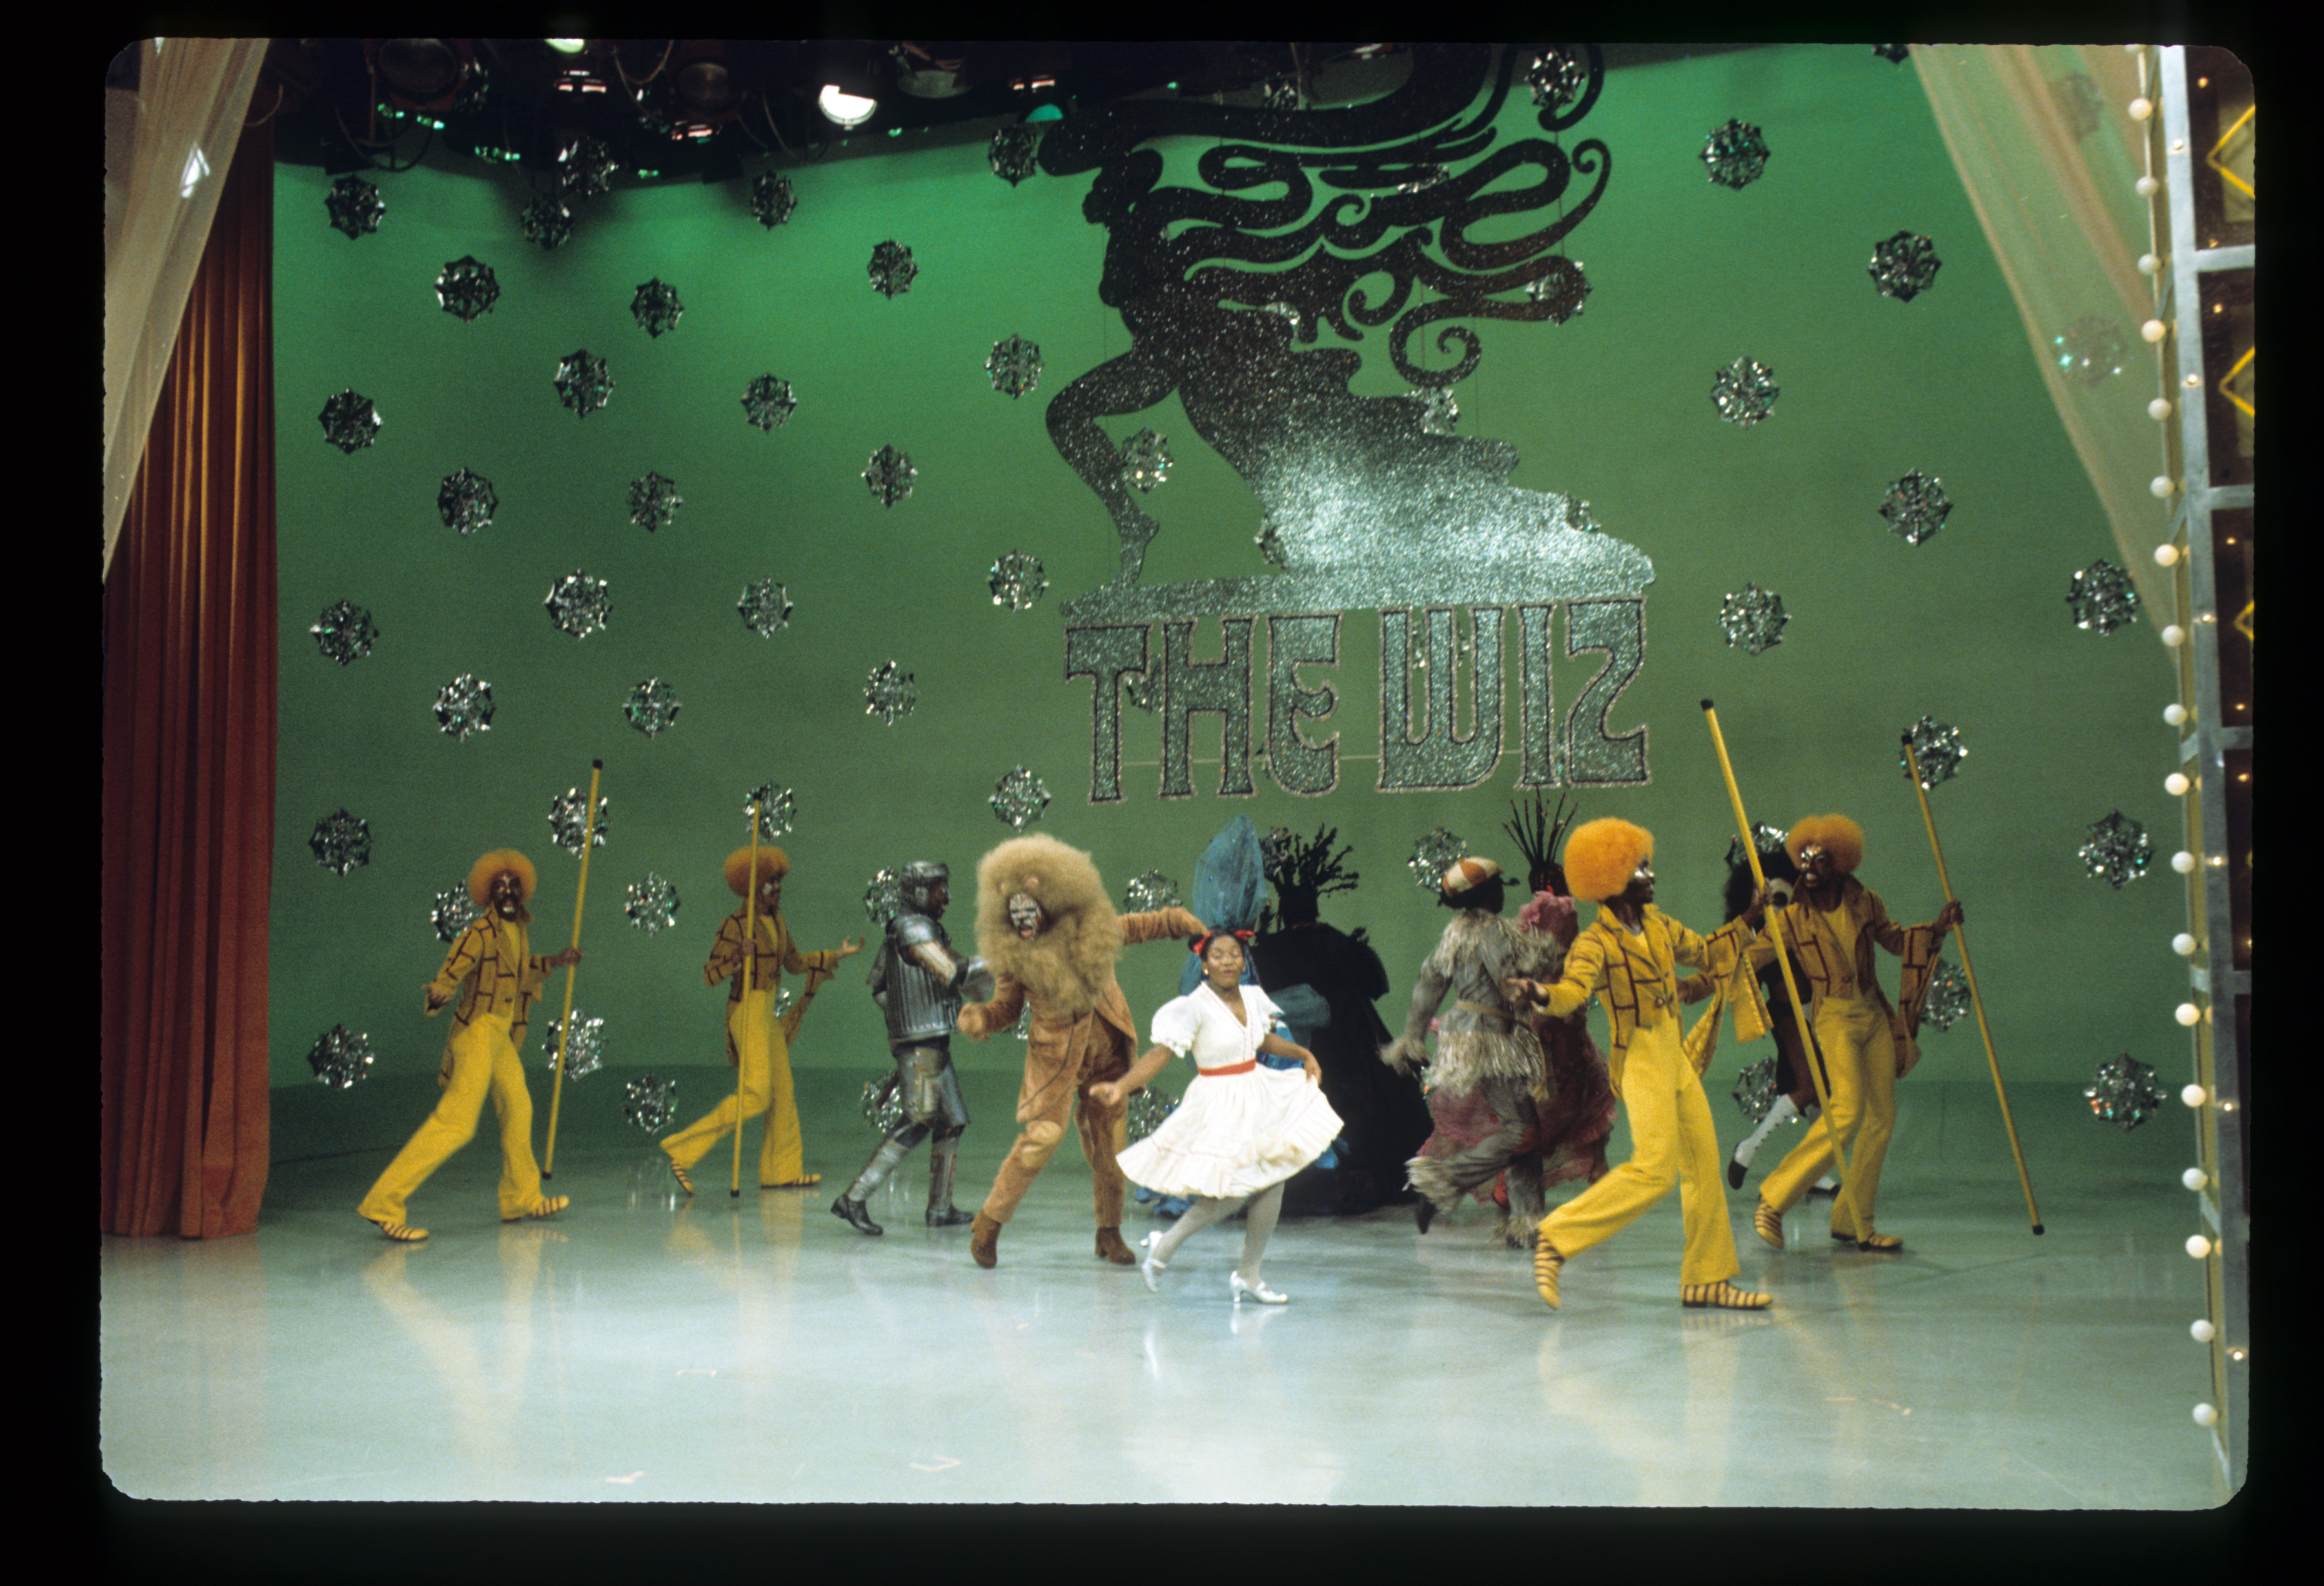 Essay: 'The Wiz' is Pure Black Excellence